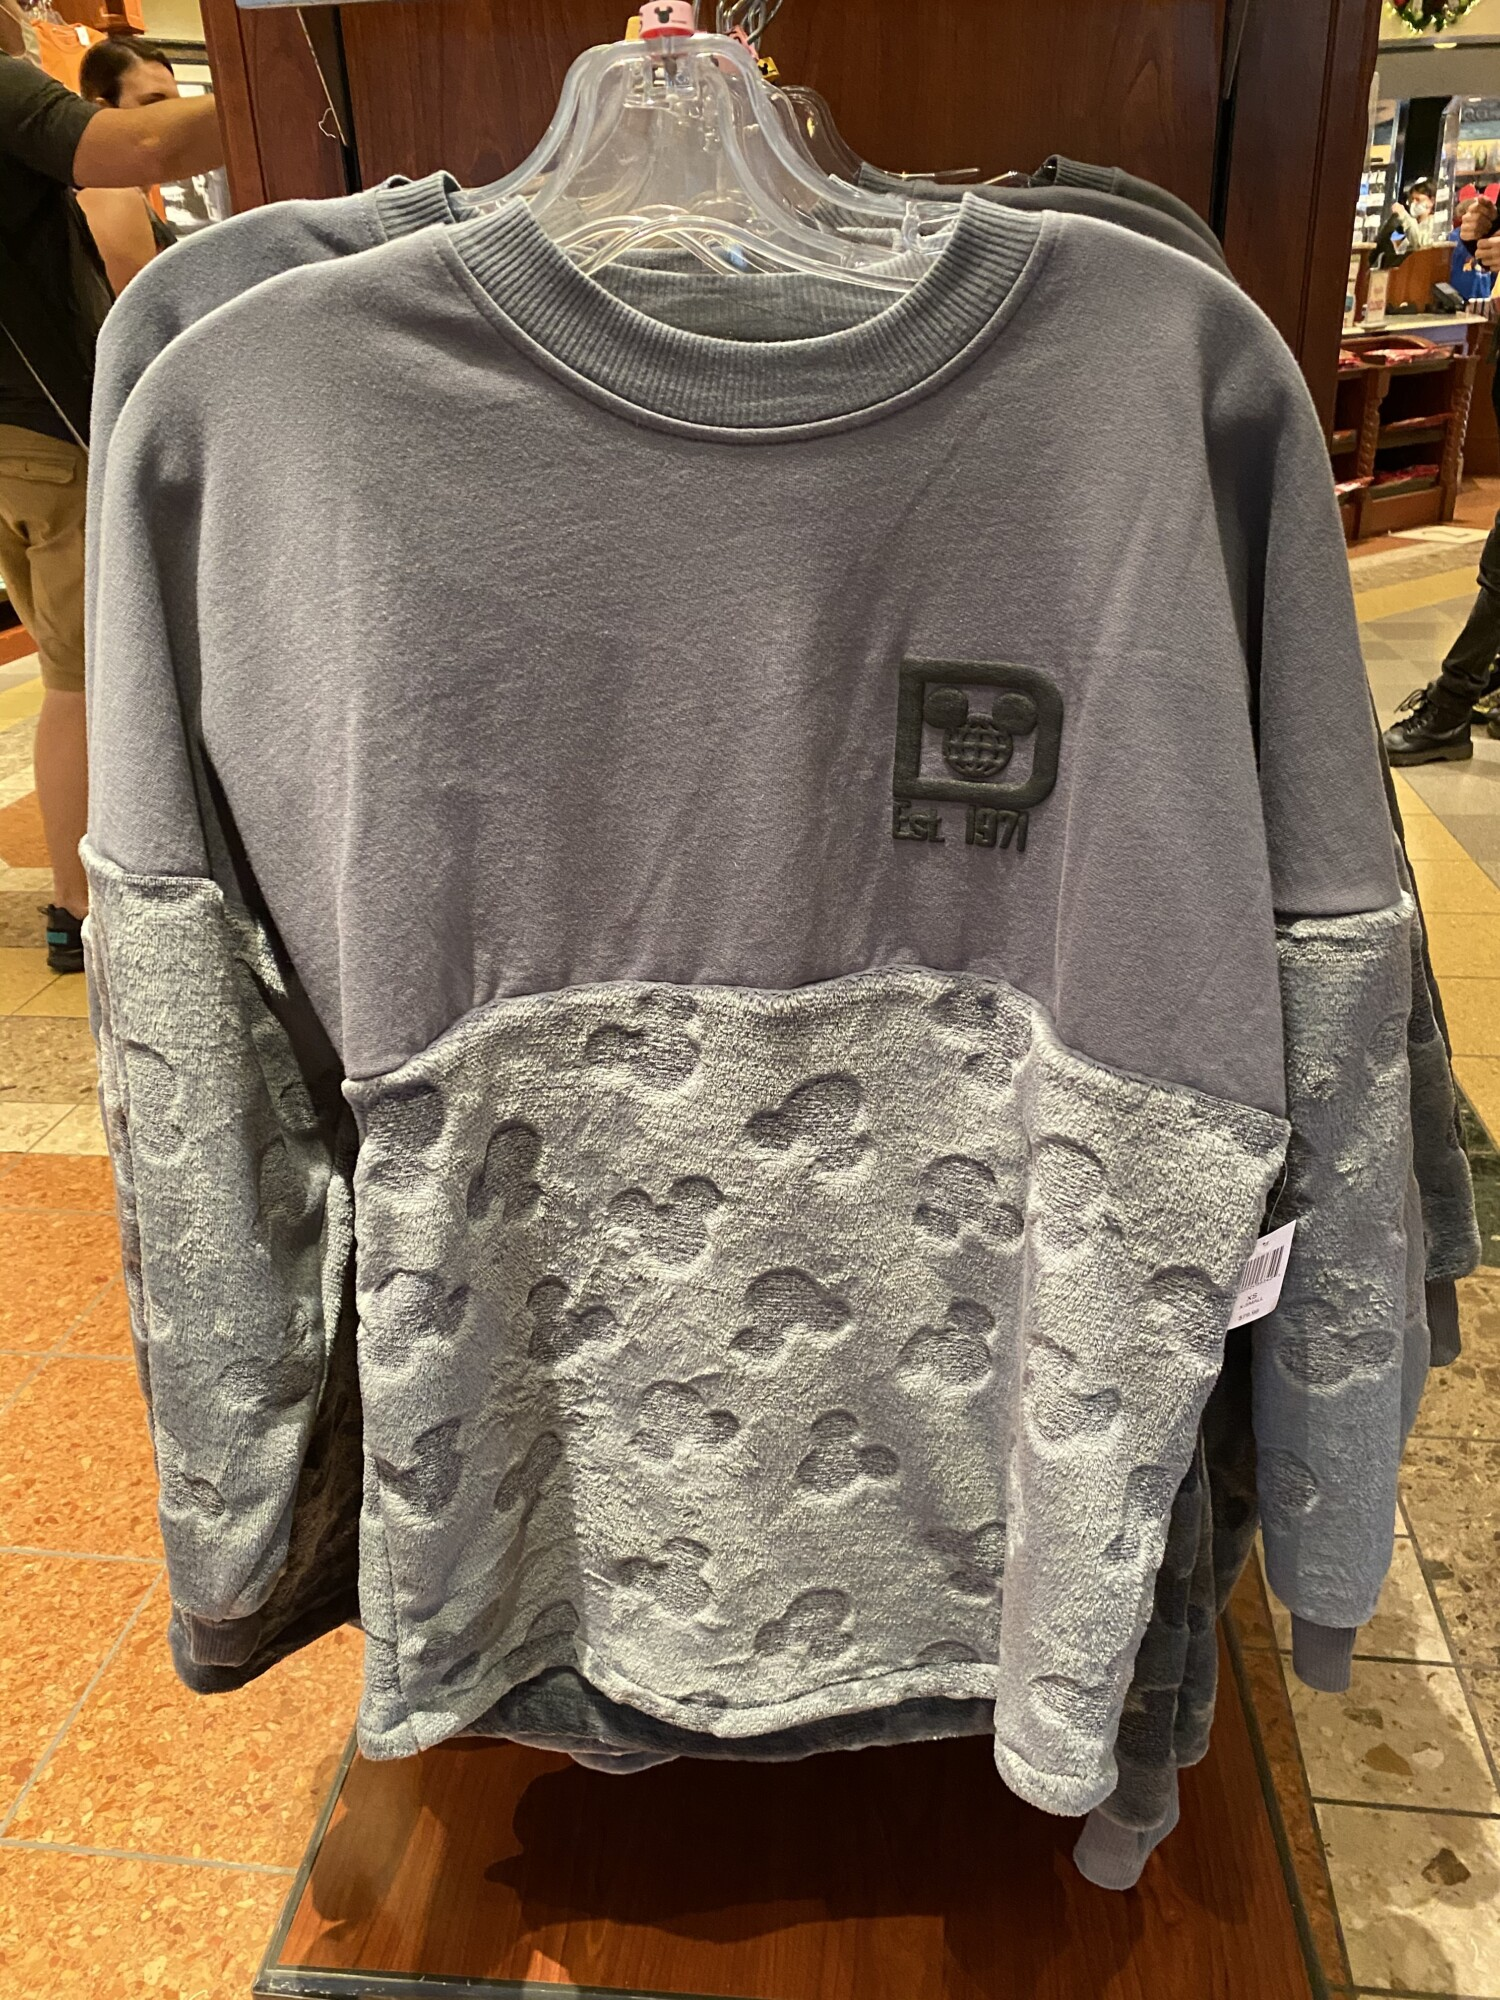 New Sparkly Silver Apparel at Hollywood Studios! 13